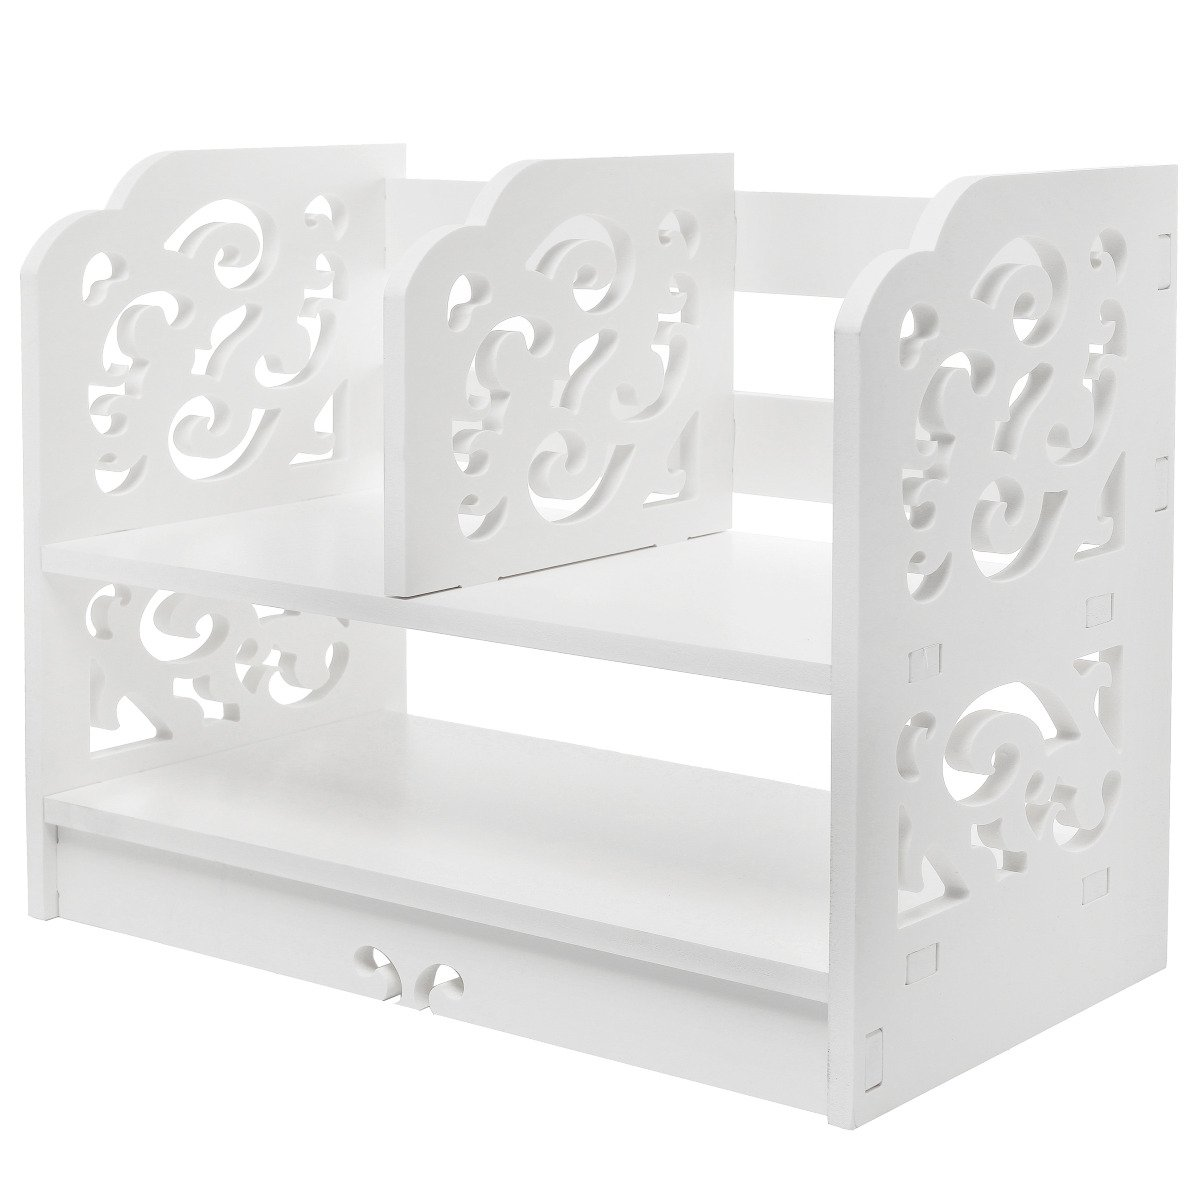 Amazon mygift white wood openwork freestanding book shelfdesk amazon mygift white wood openwork freestanding book shelfdesk top organization caddystationary storage kitchen dining altavistaventures Choice Image